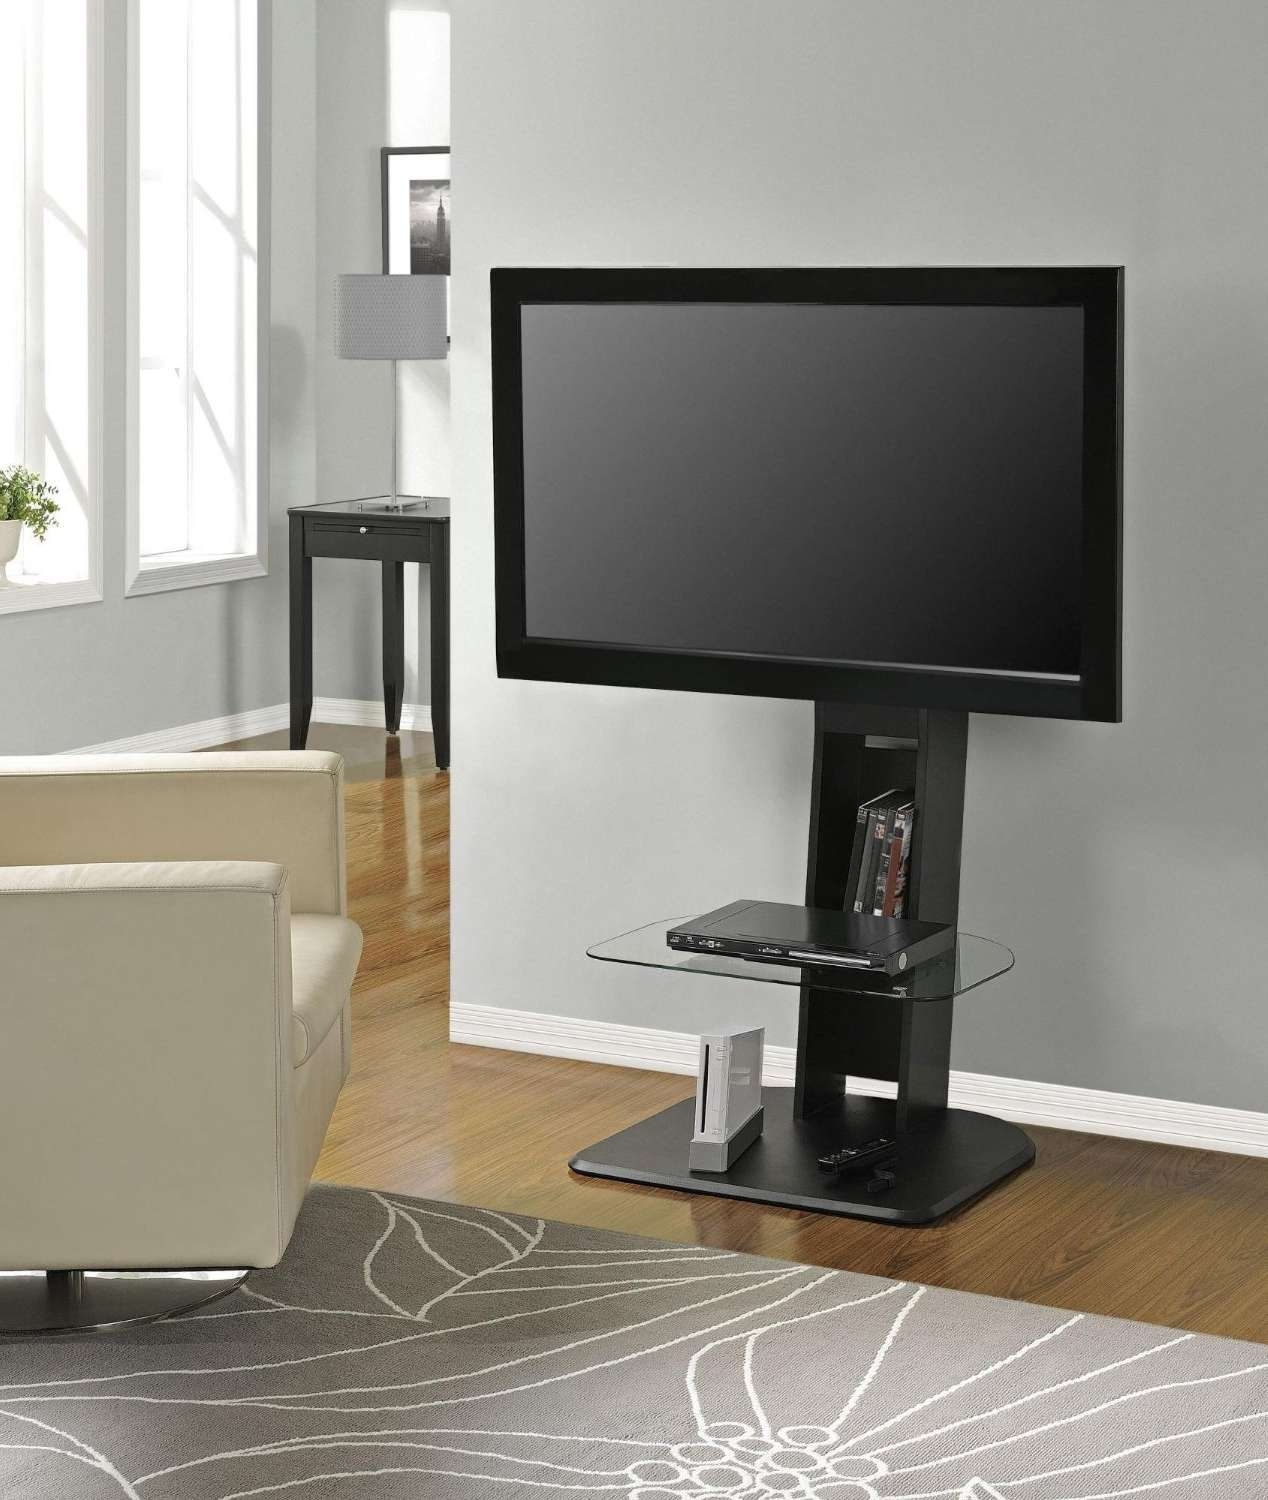 Tv : Hypnotizing Tall Skinny Tv Stands Favorite Skinny Flat Screen In Tall Skinny Tv Stands (View 11 of 15)